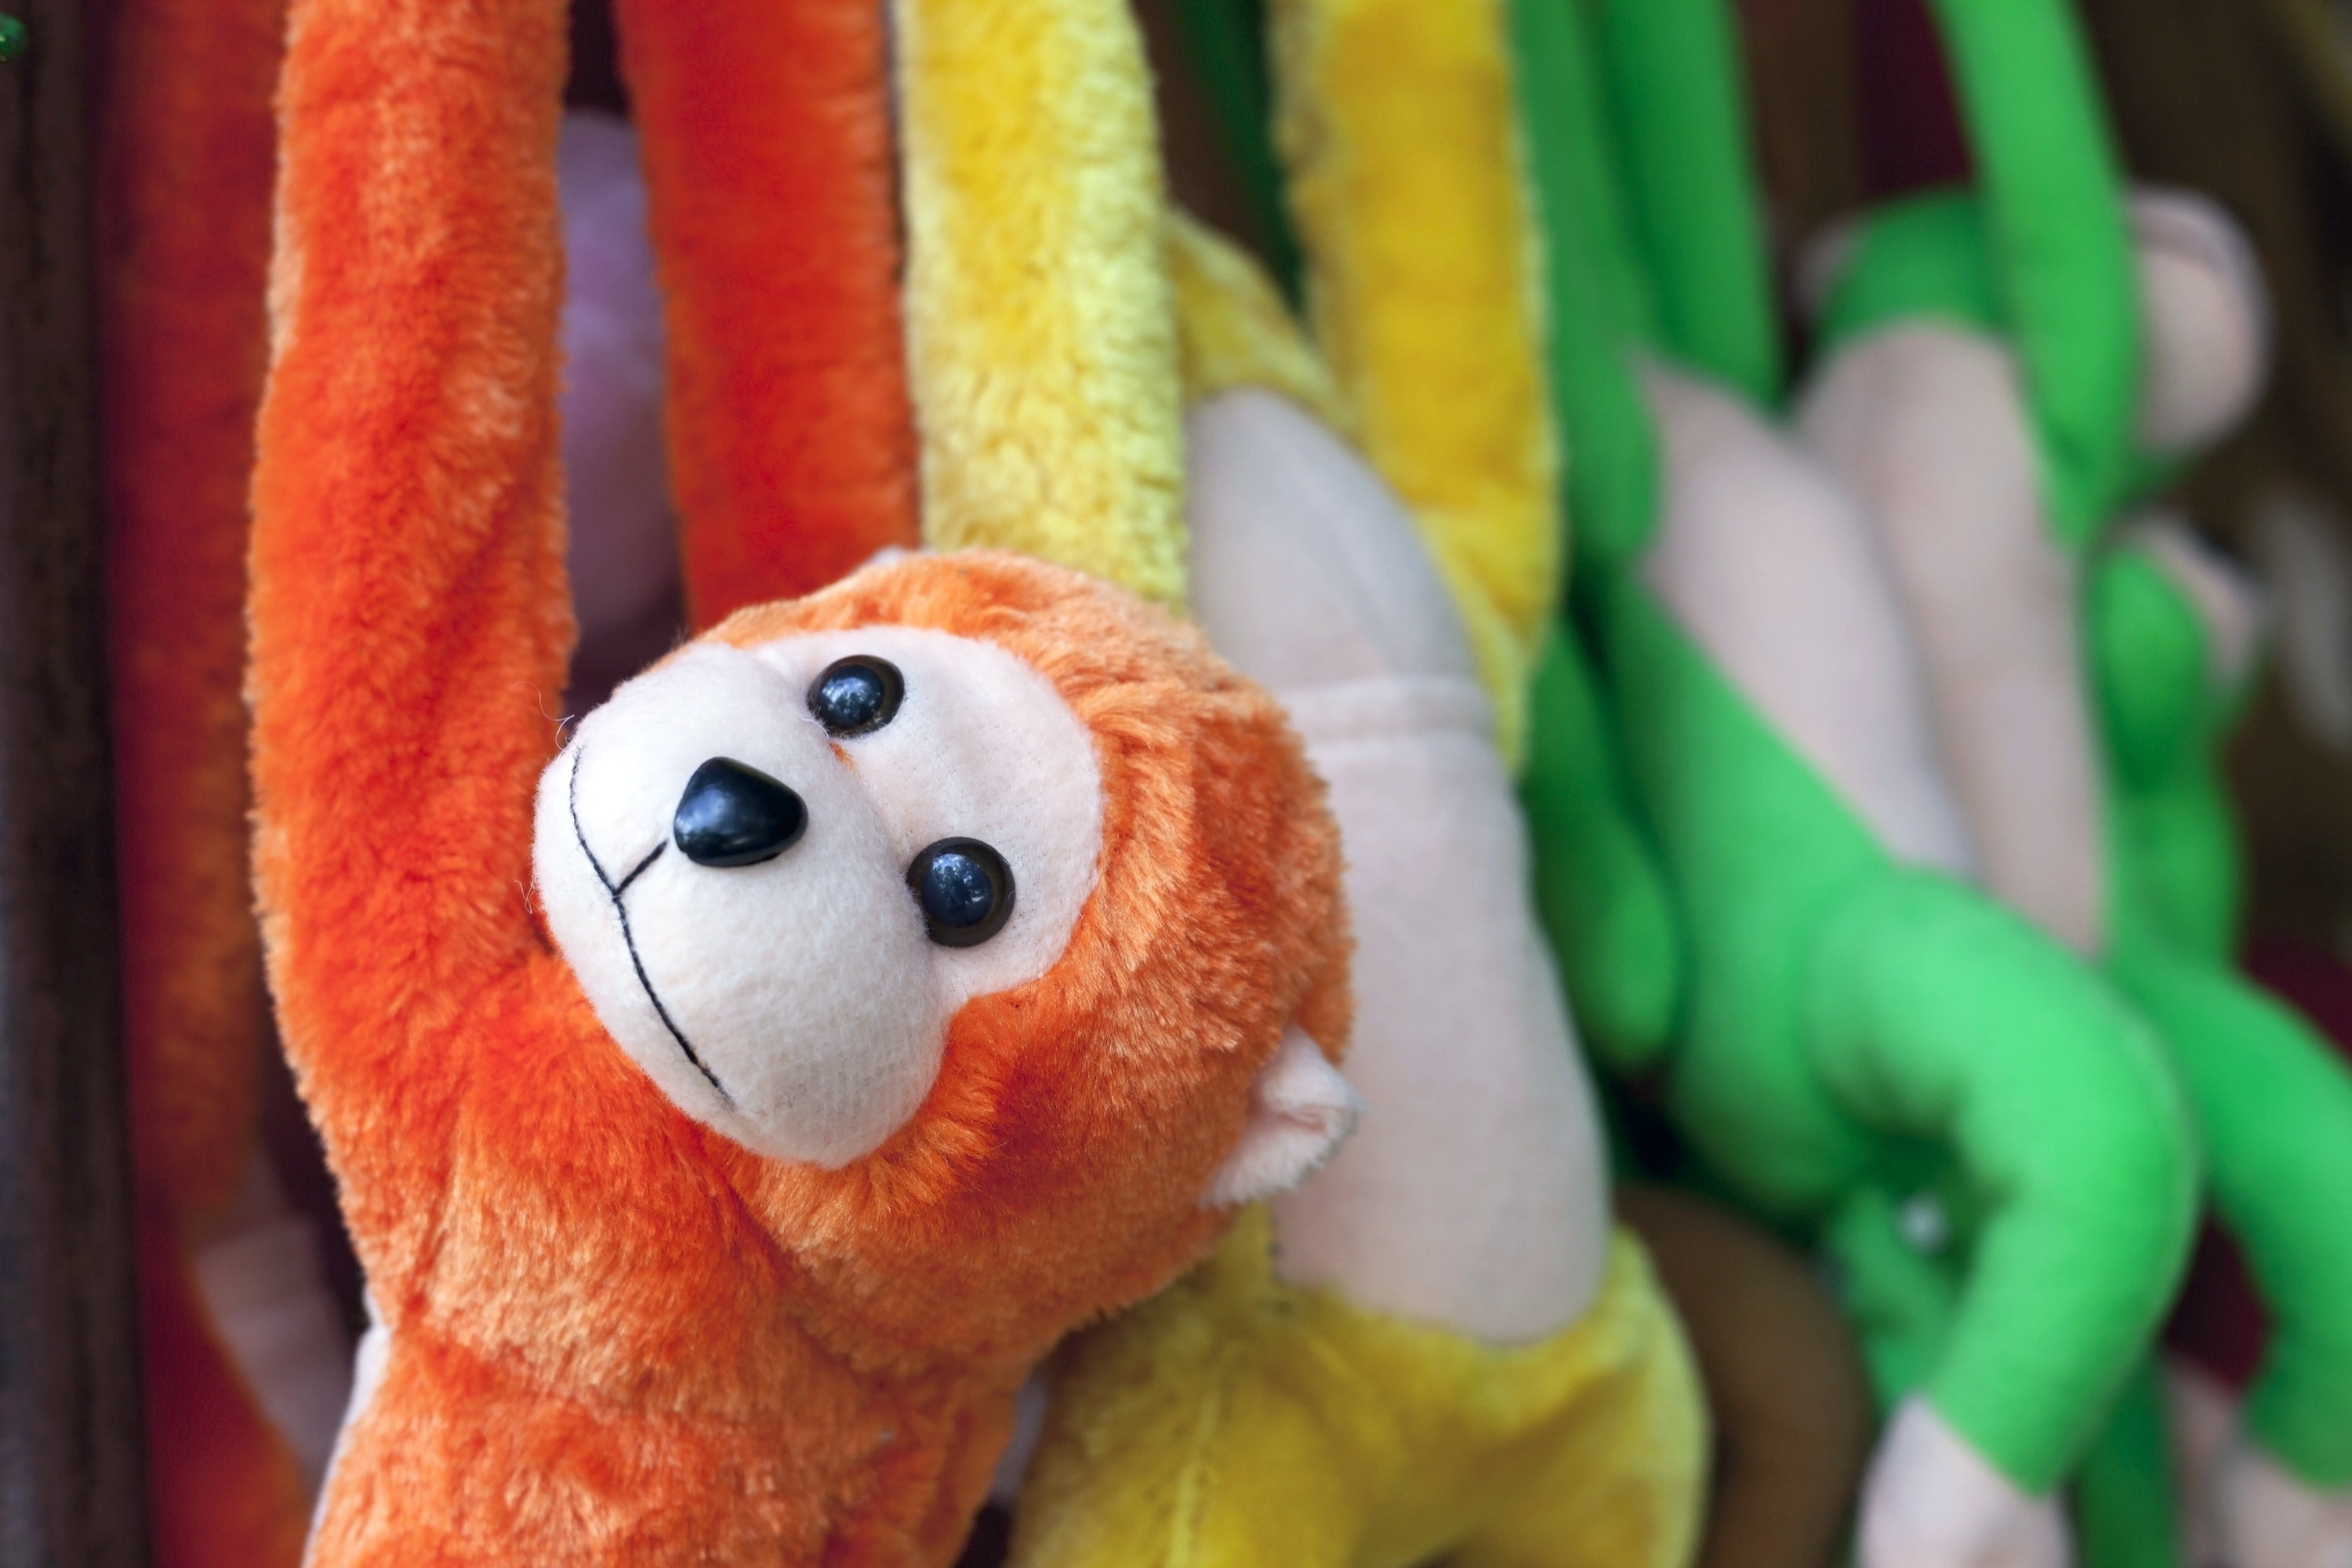 A stuffed orange monkey doll hanging by its arms